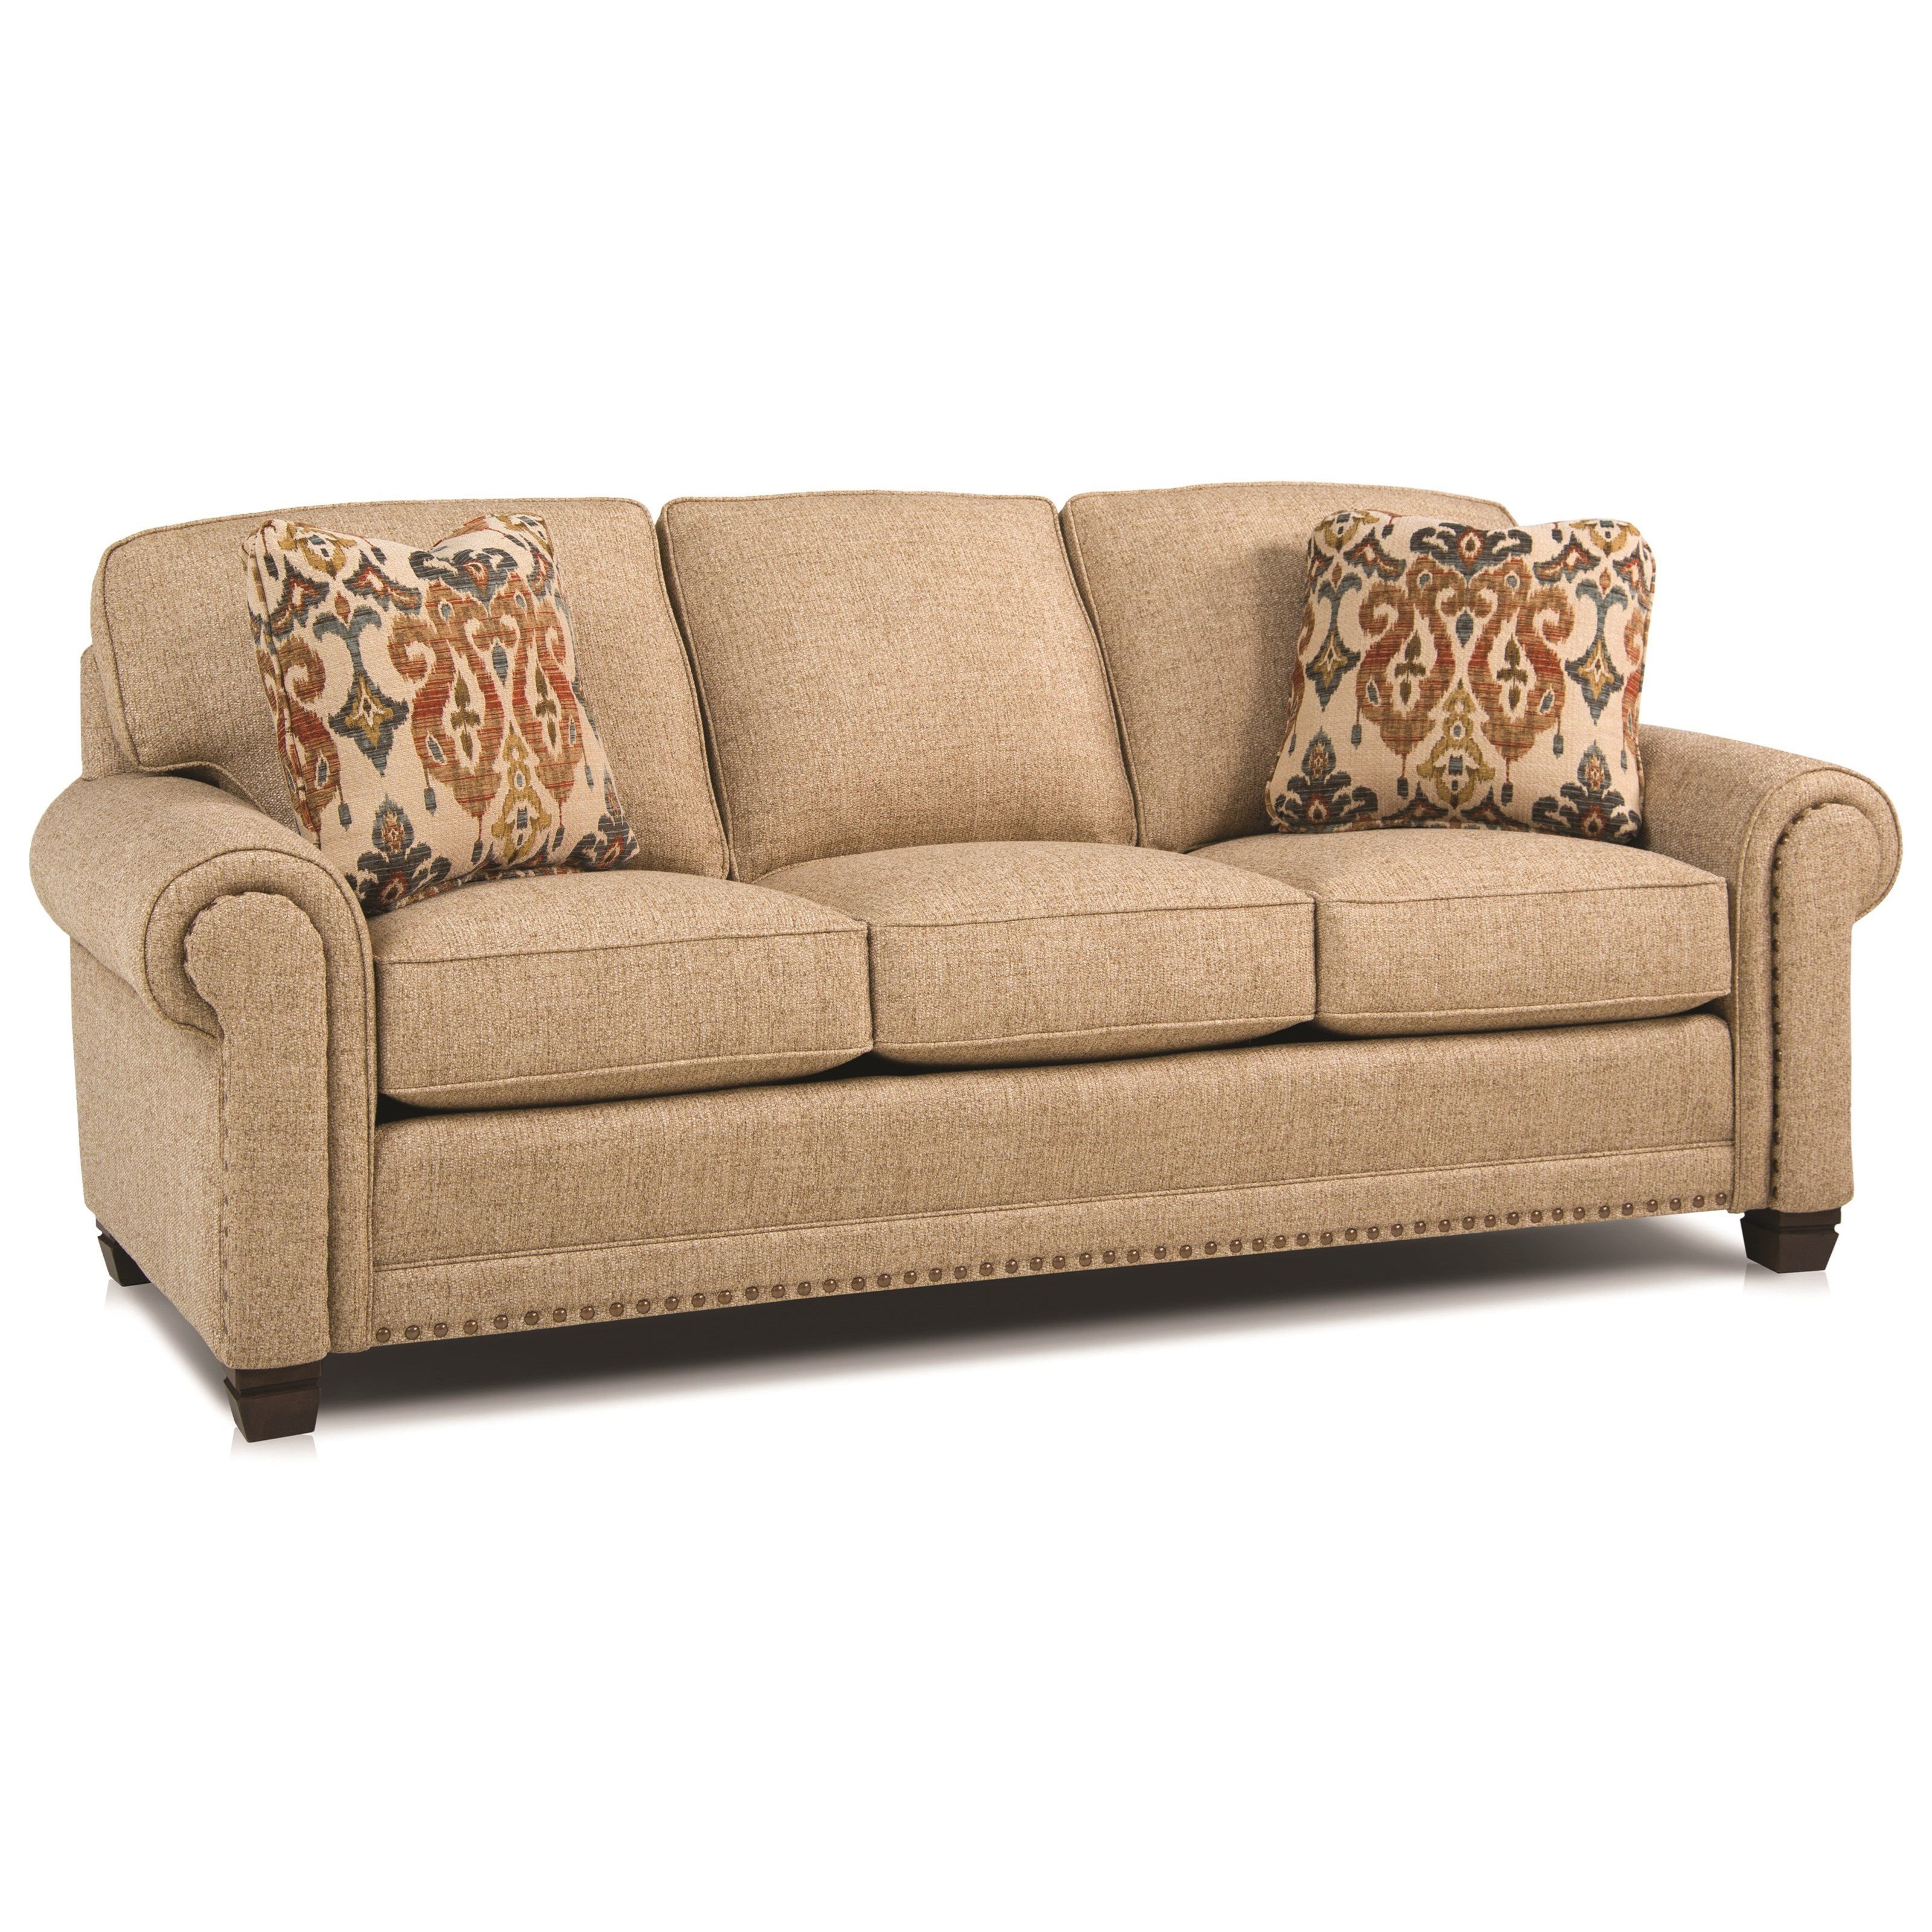 393 Traditional Stationary Sofa by Smith Brothers at Saugerties Furniture Mart